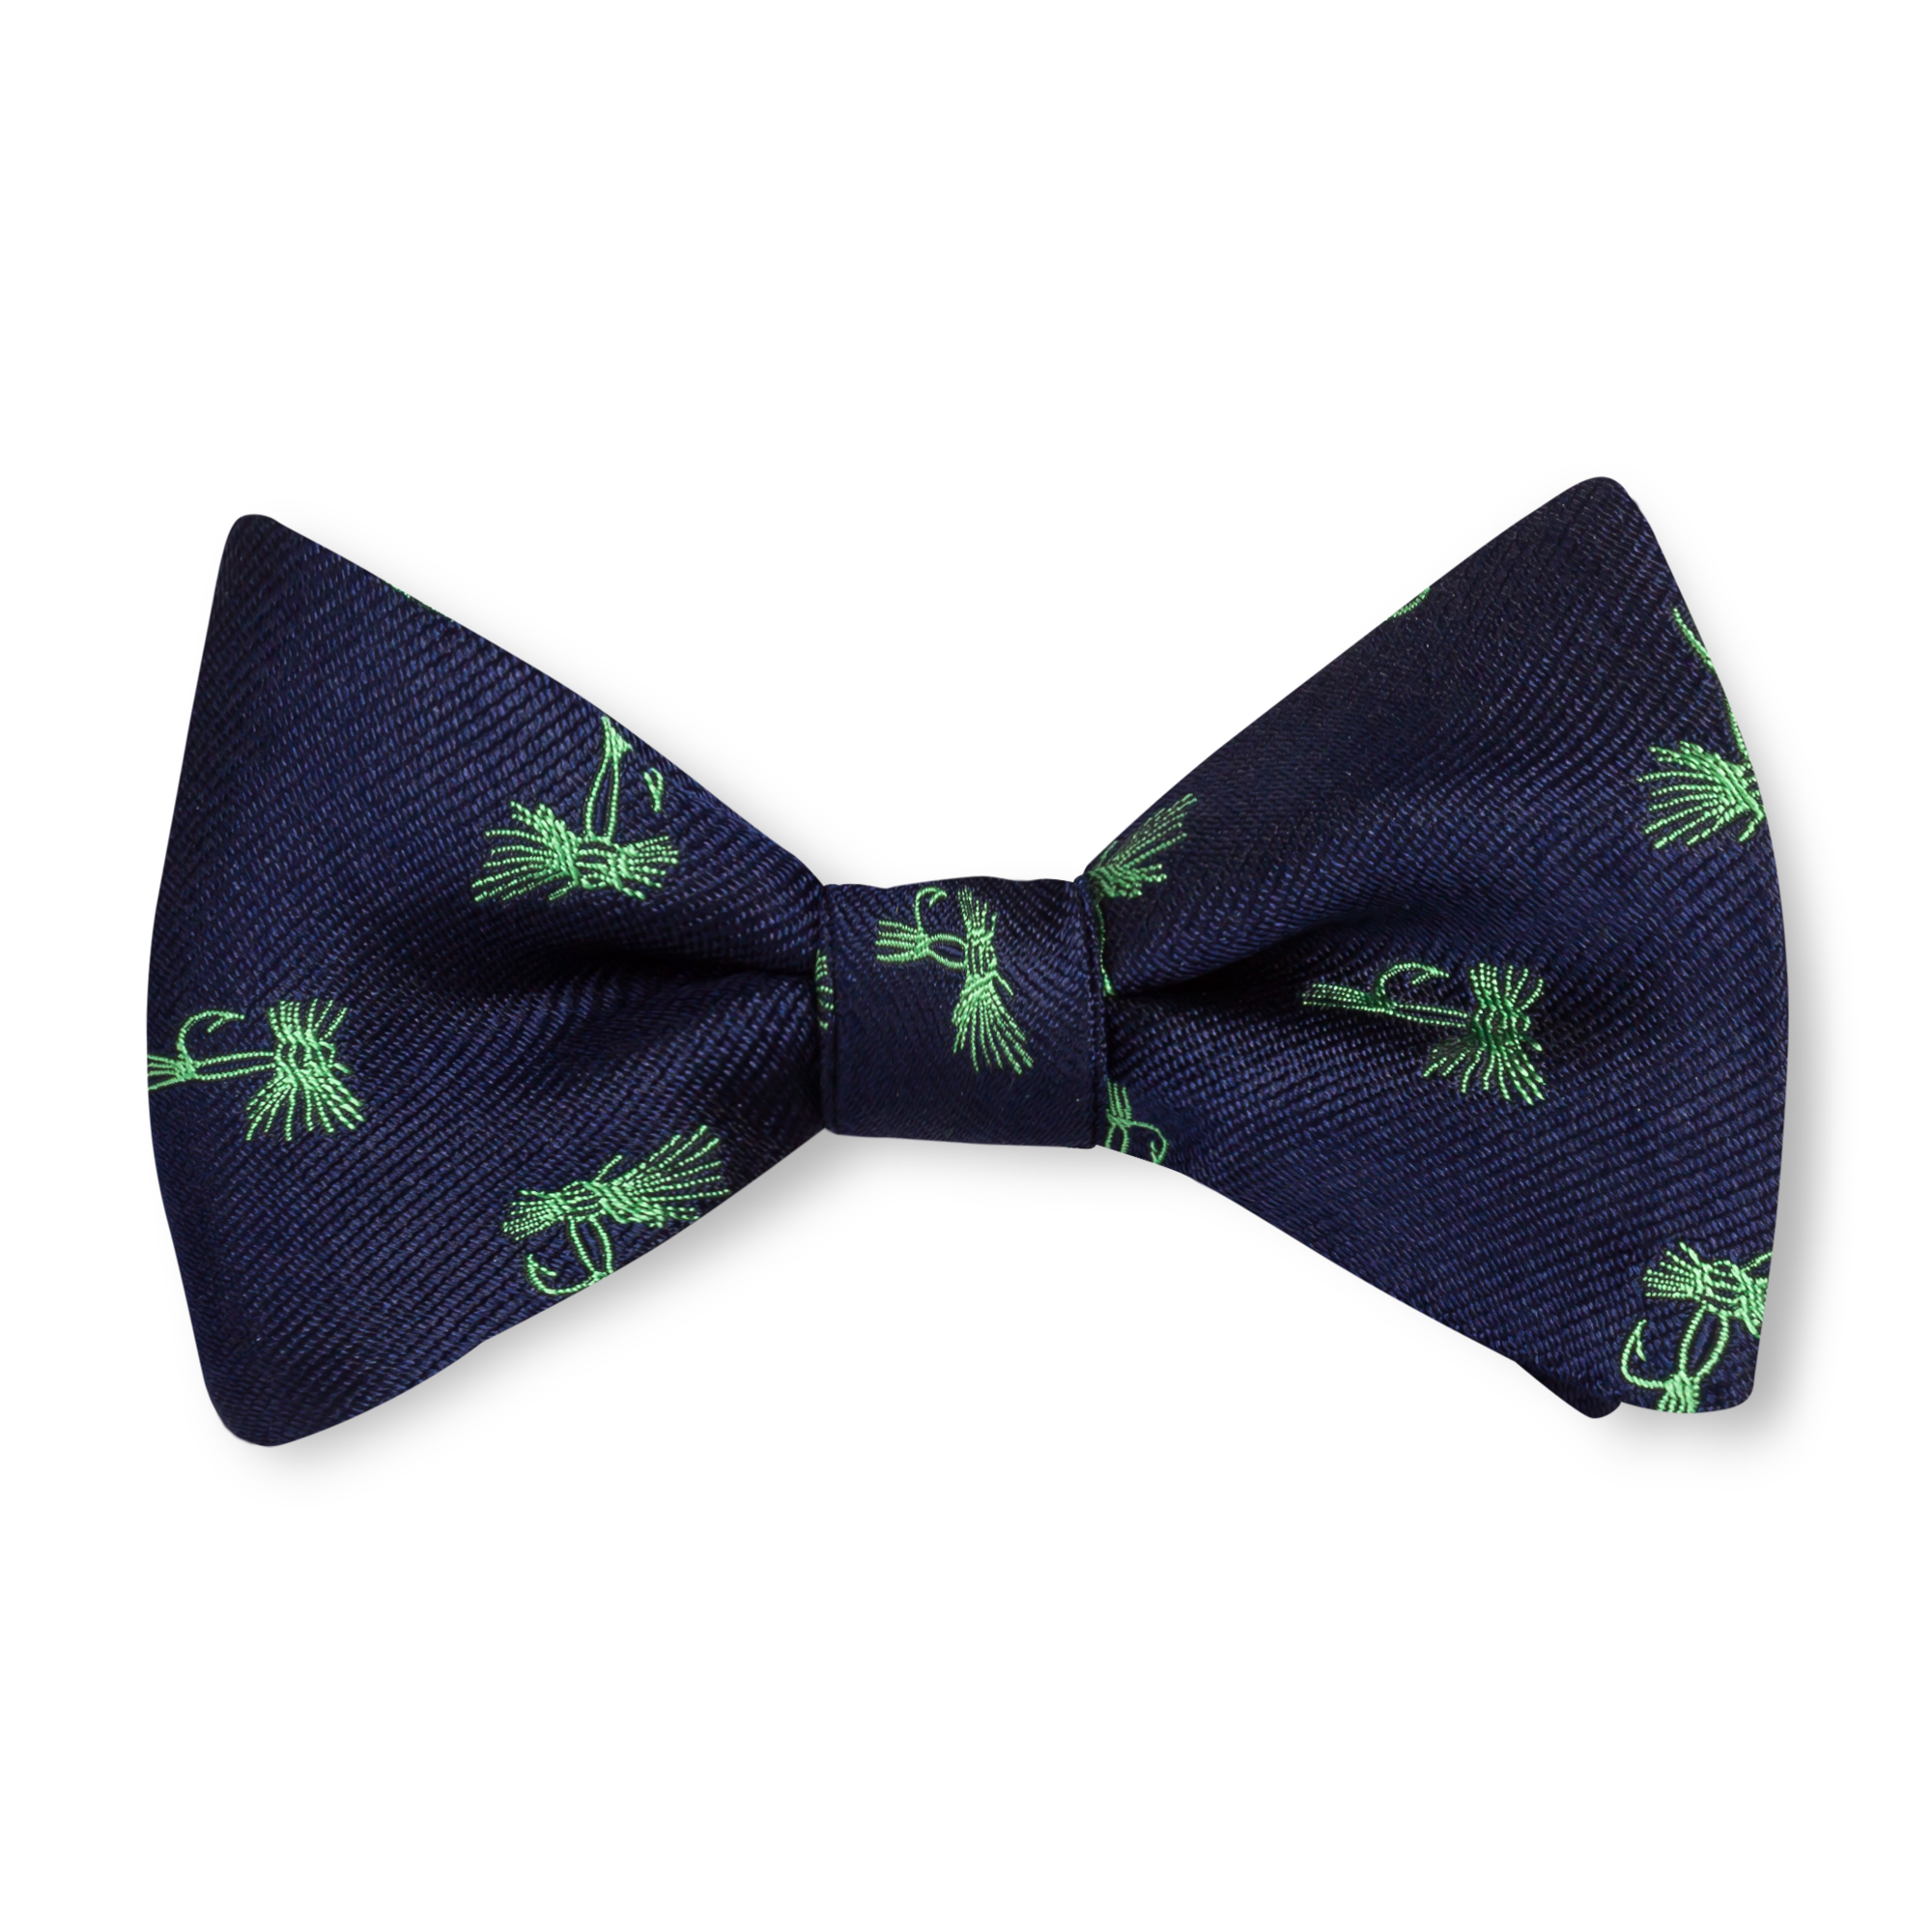 The Boys Fly Tie Bow Tie - Navy with Green